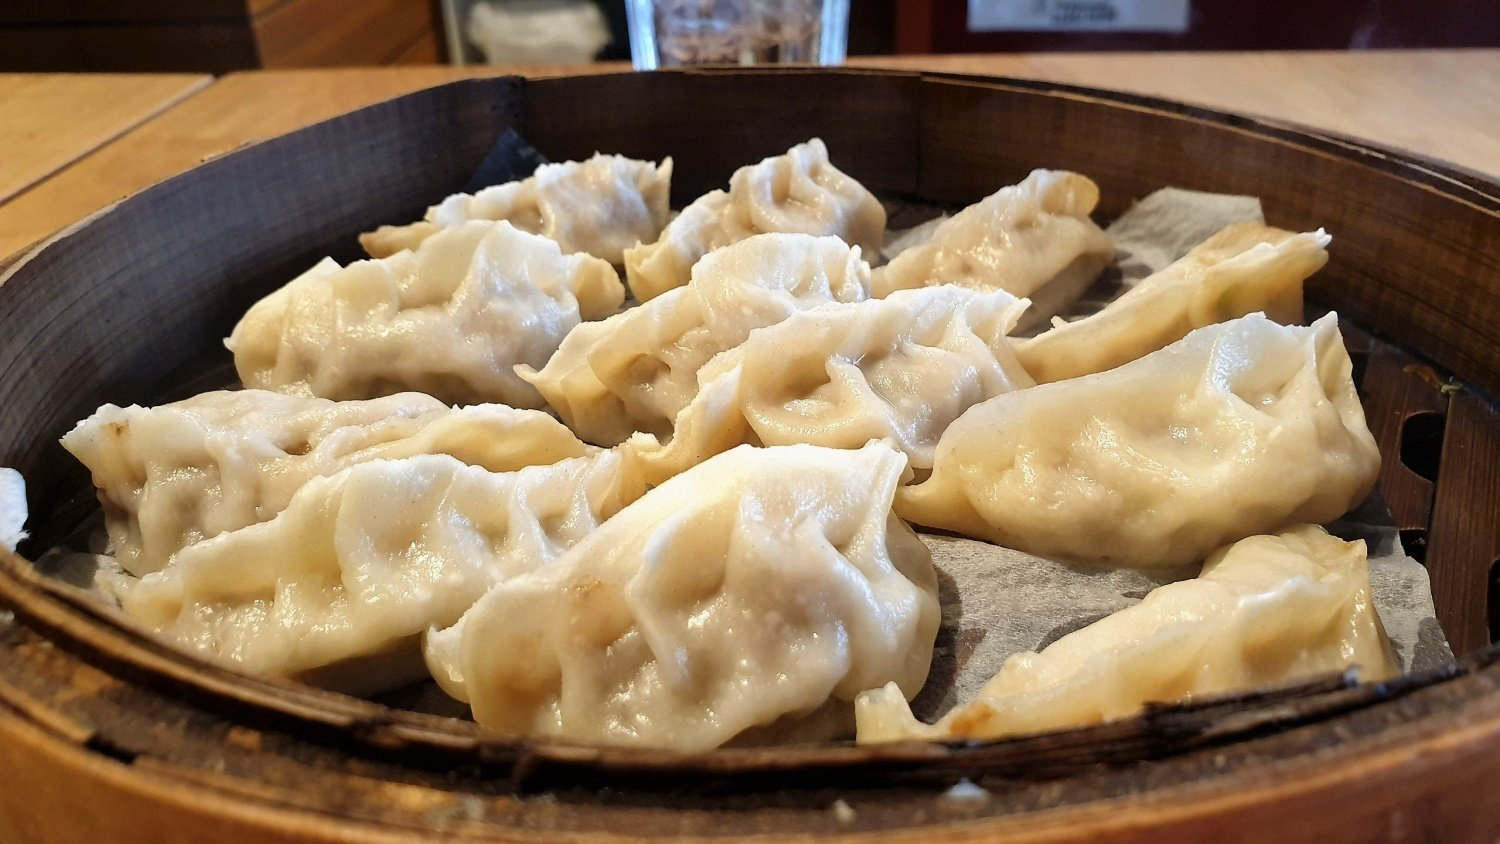 Dove mangiare Cinese a Seattle: Ravioli Ping's Dumpling House